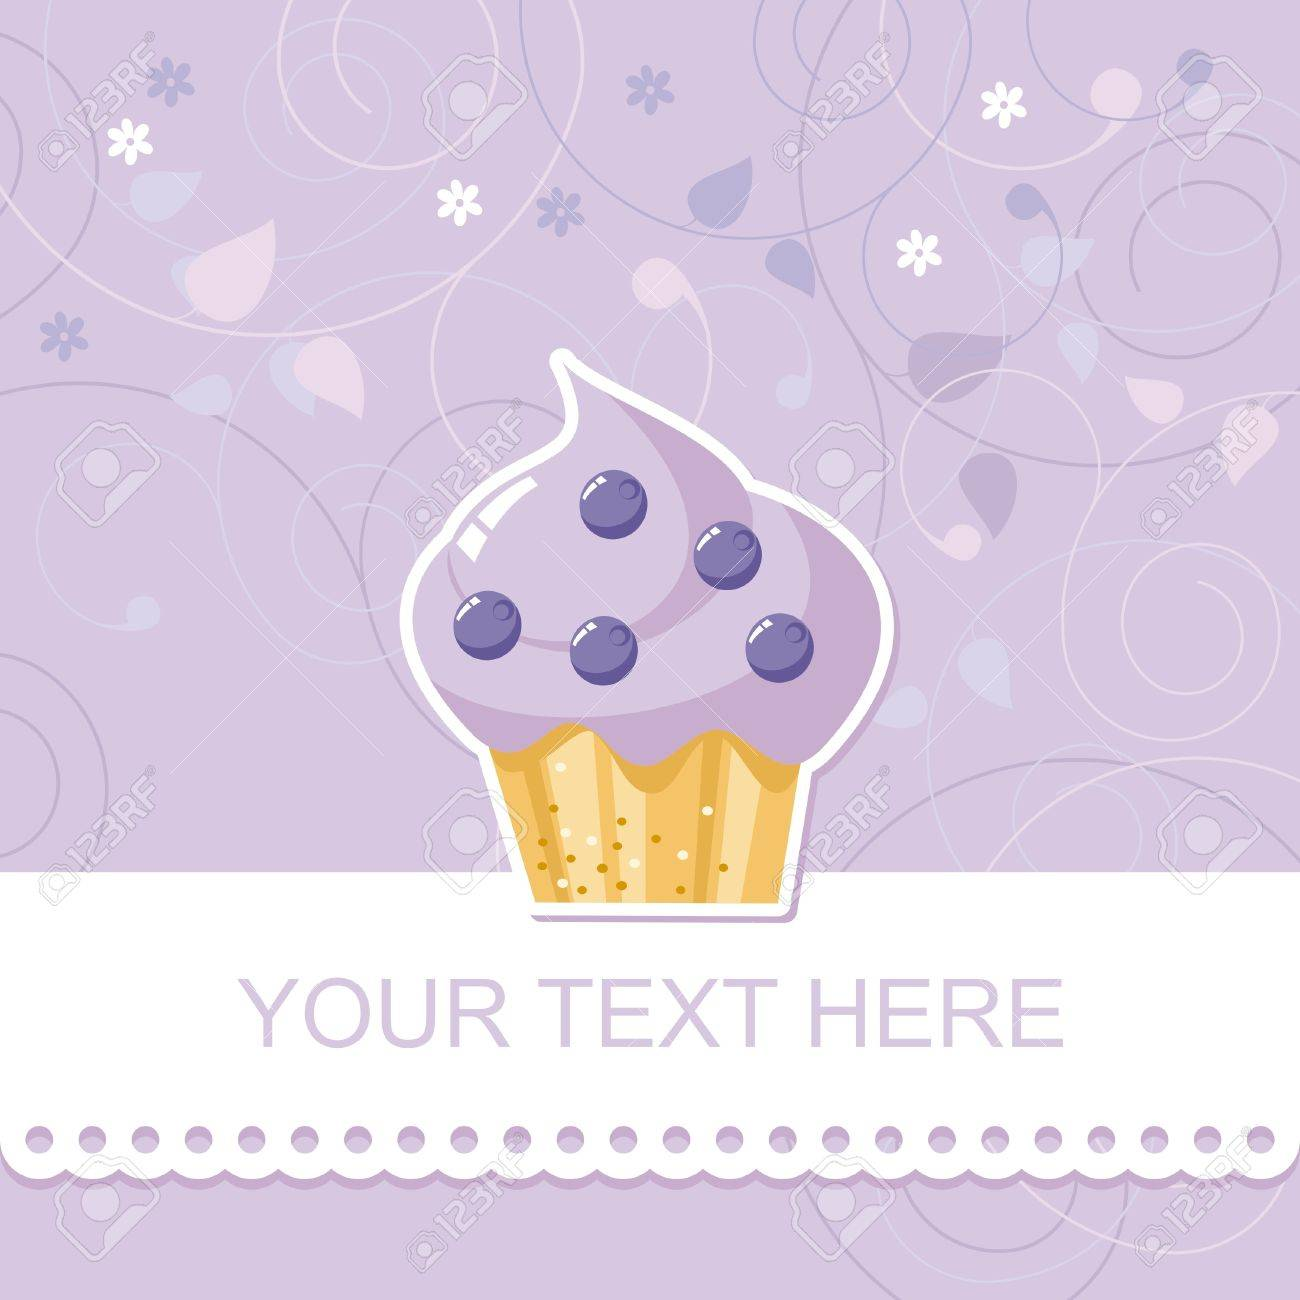 Blueberry Muffins Clipart Blueberry Muffin Cute Happy